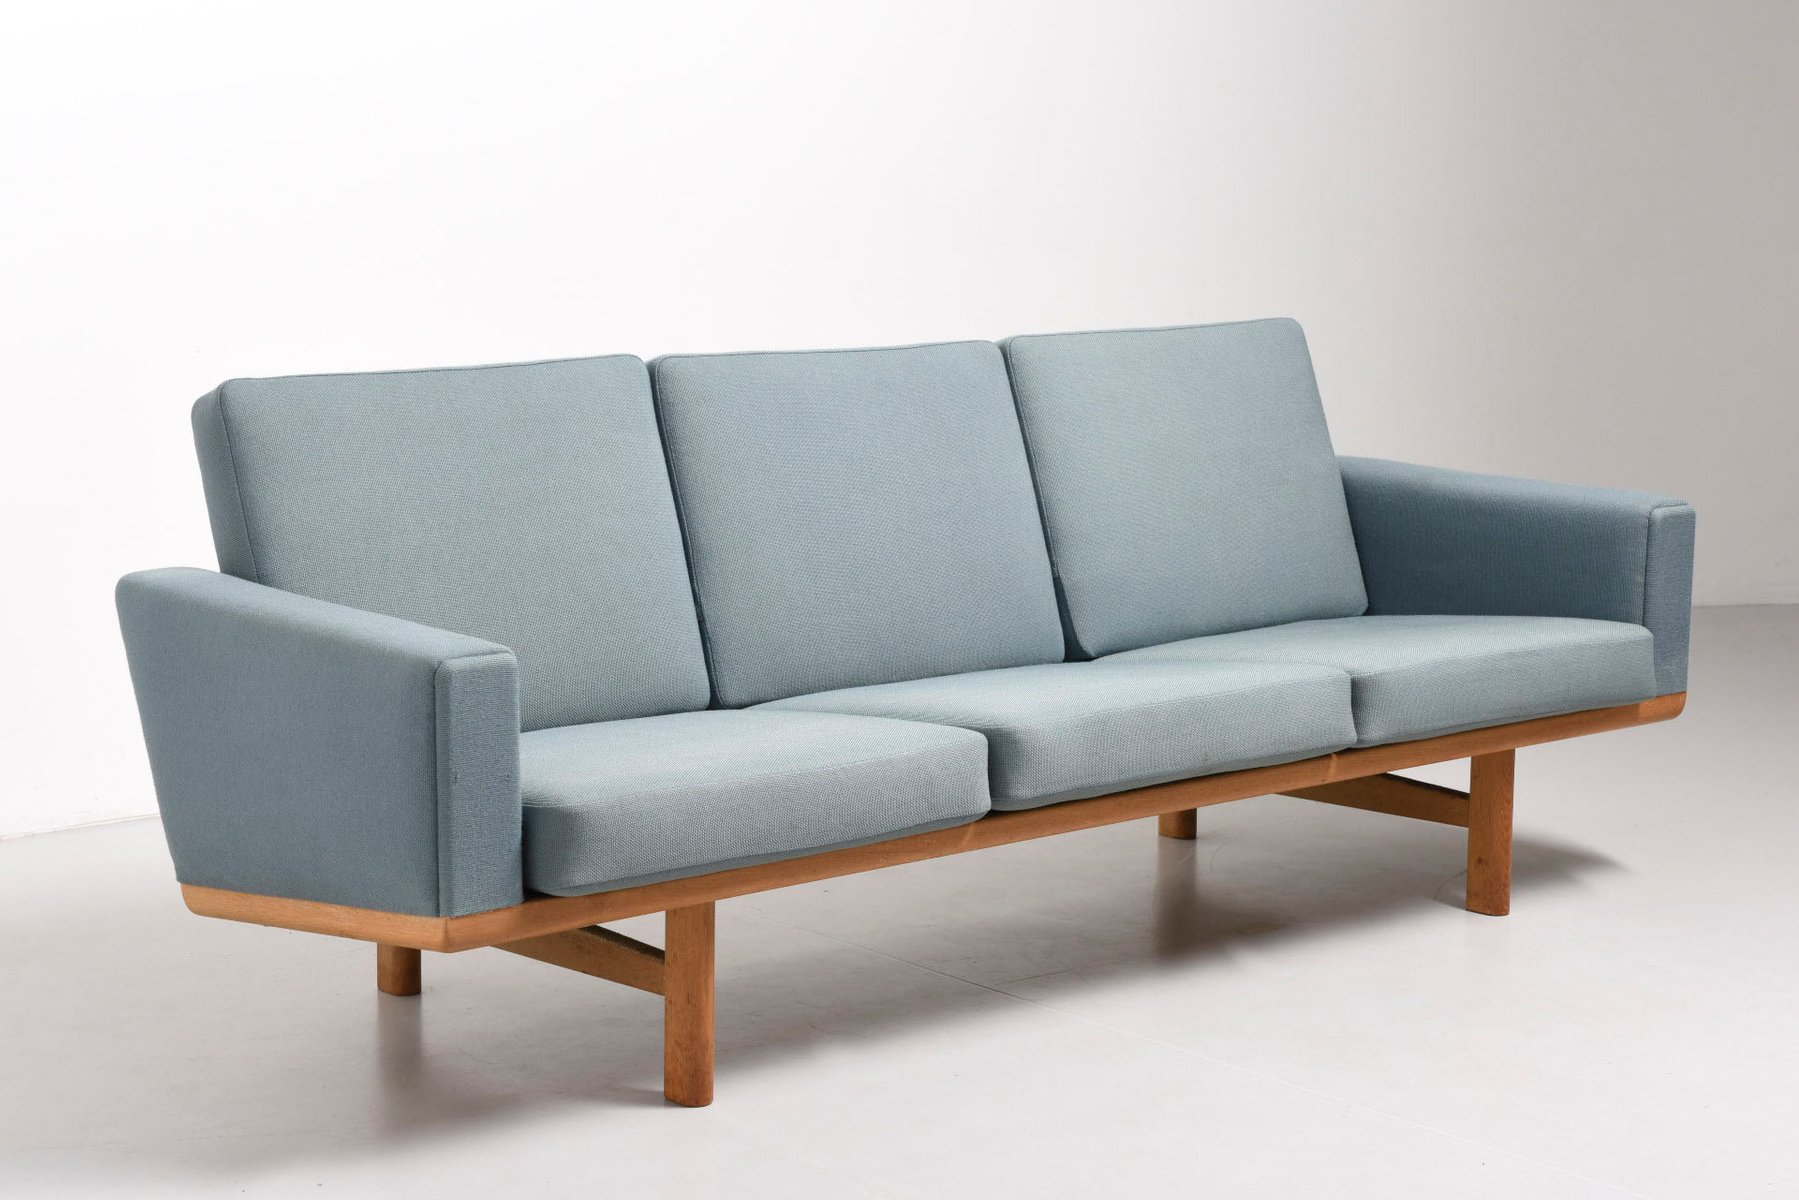 Light blue ge 236 sofa by hans j wegner for getama for for Blue couches for sale